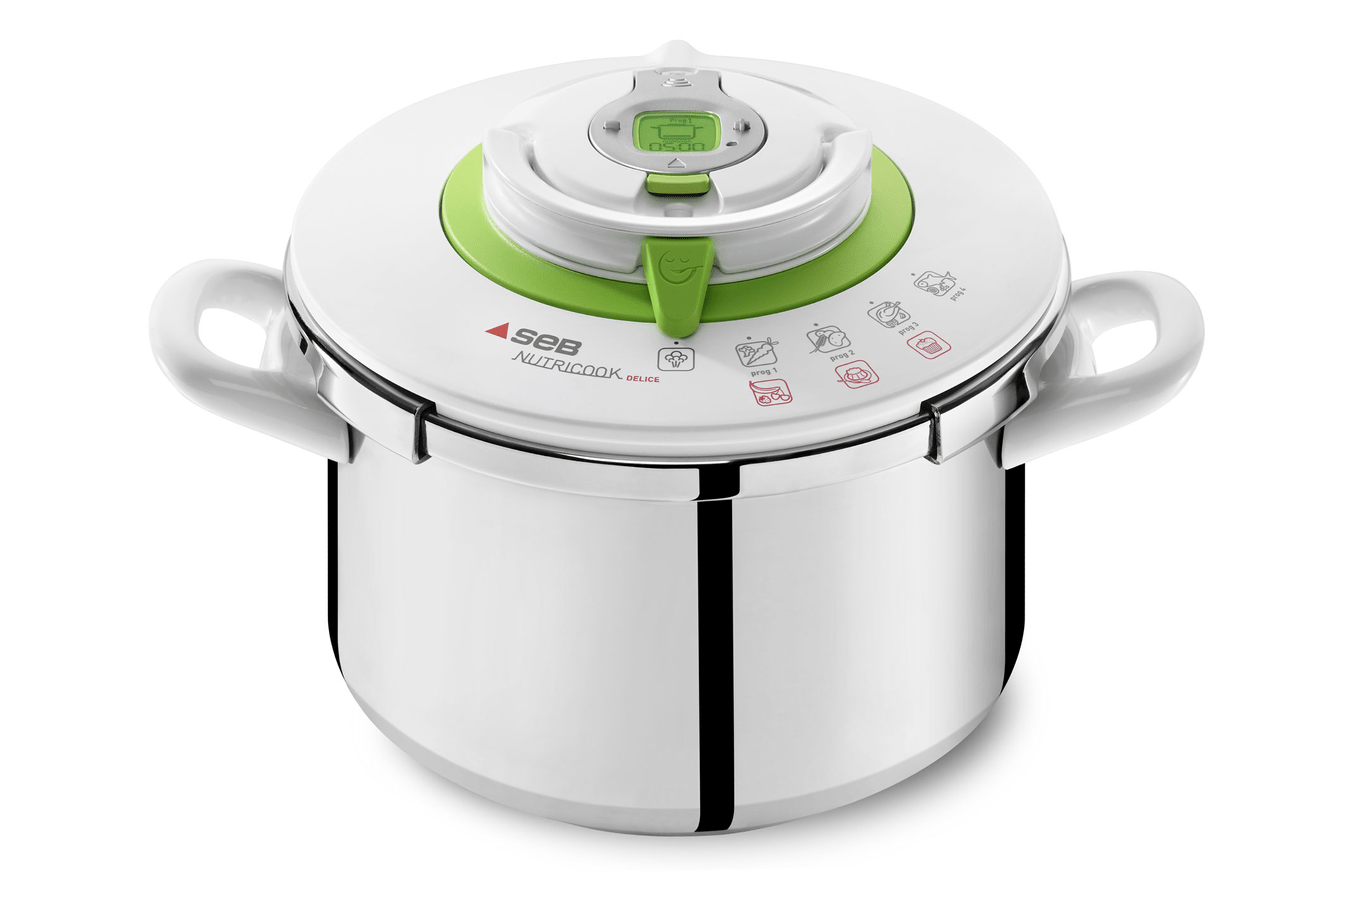 Sigle Pour Induction Cuisson Endives Cocotte Minute. Seb Cocotte Minute Etrier